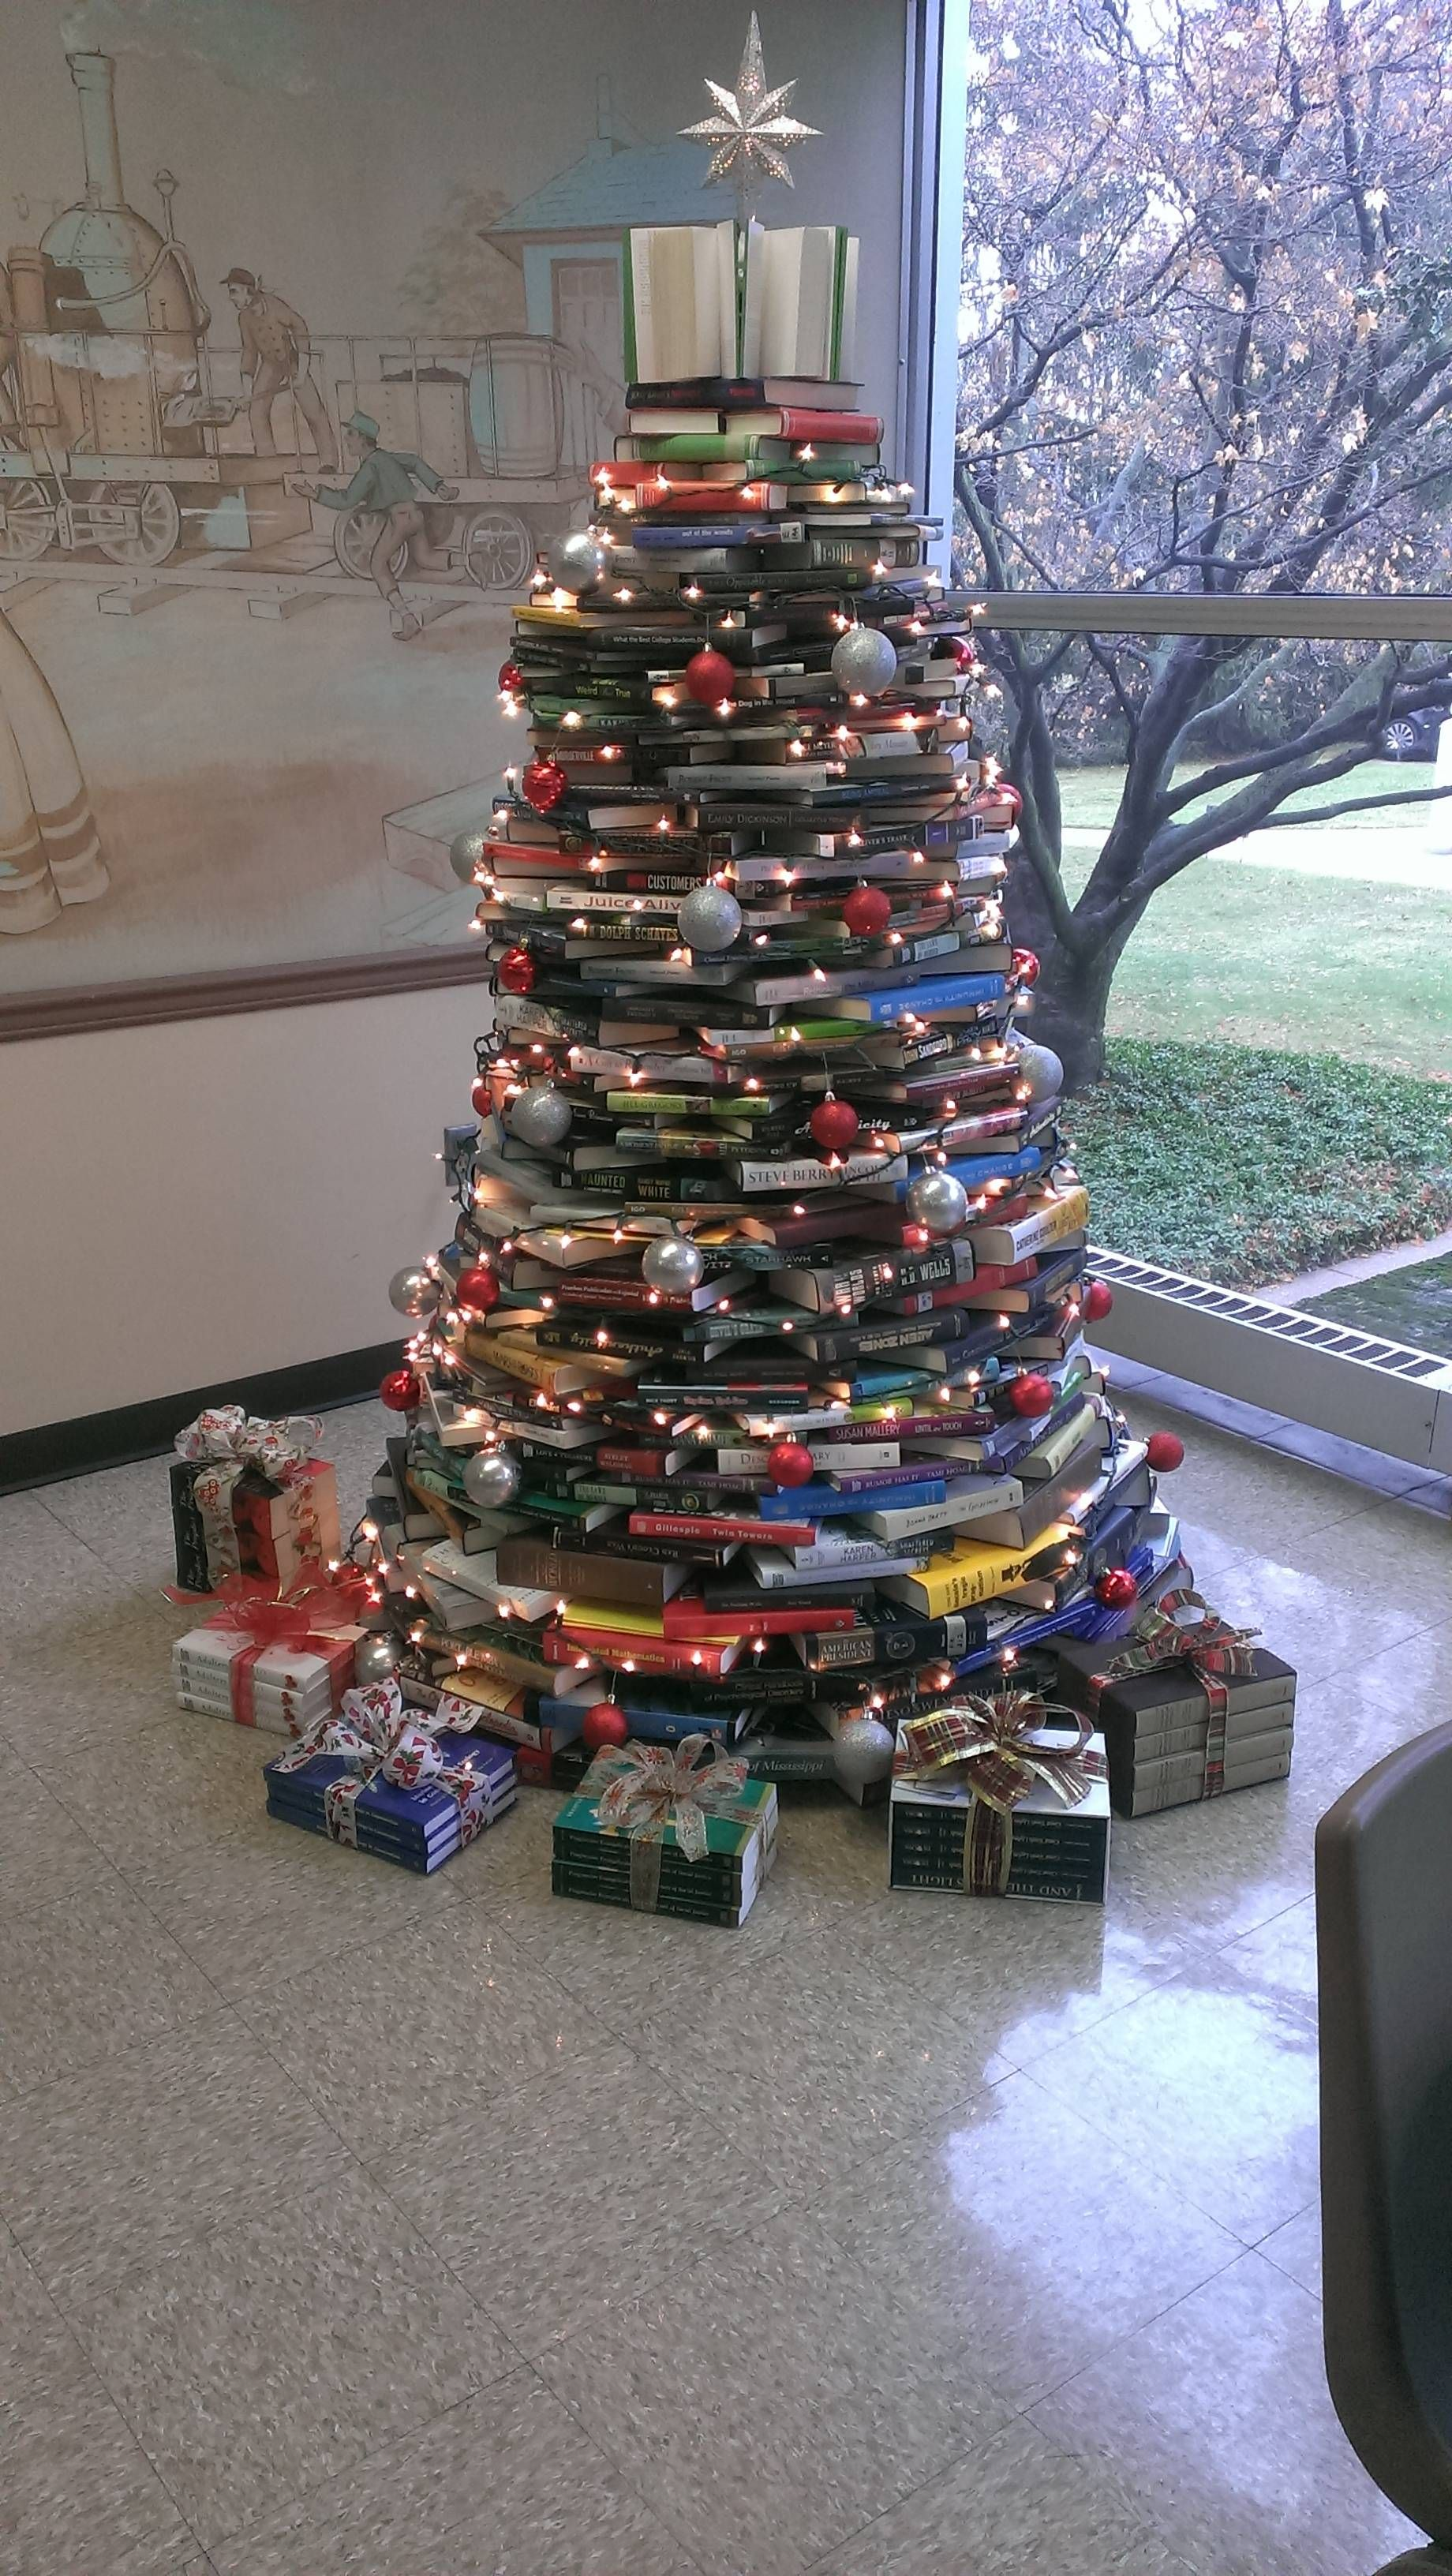 My work made a Christmas tree out of books